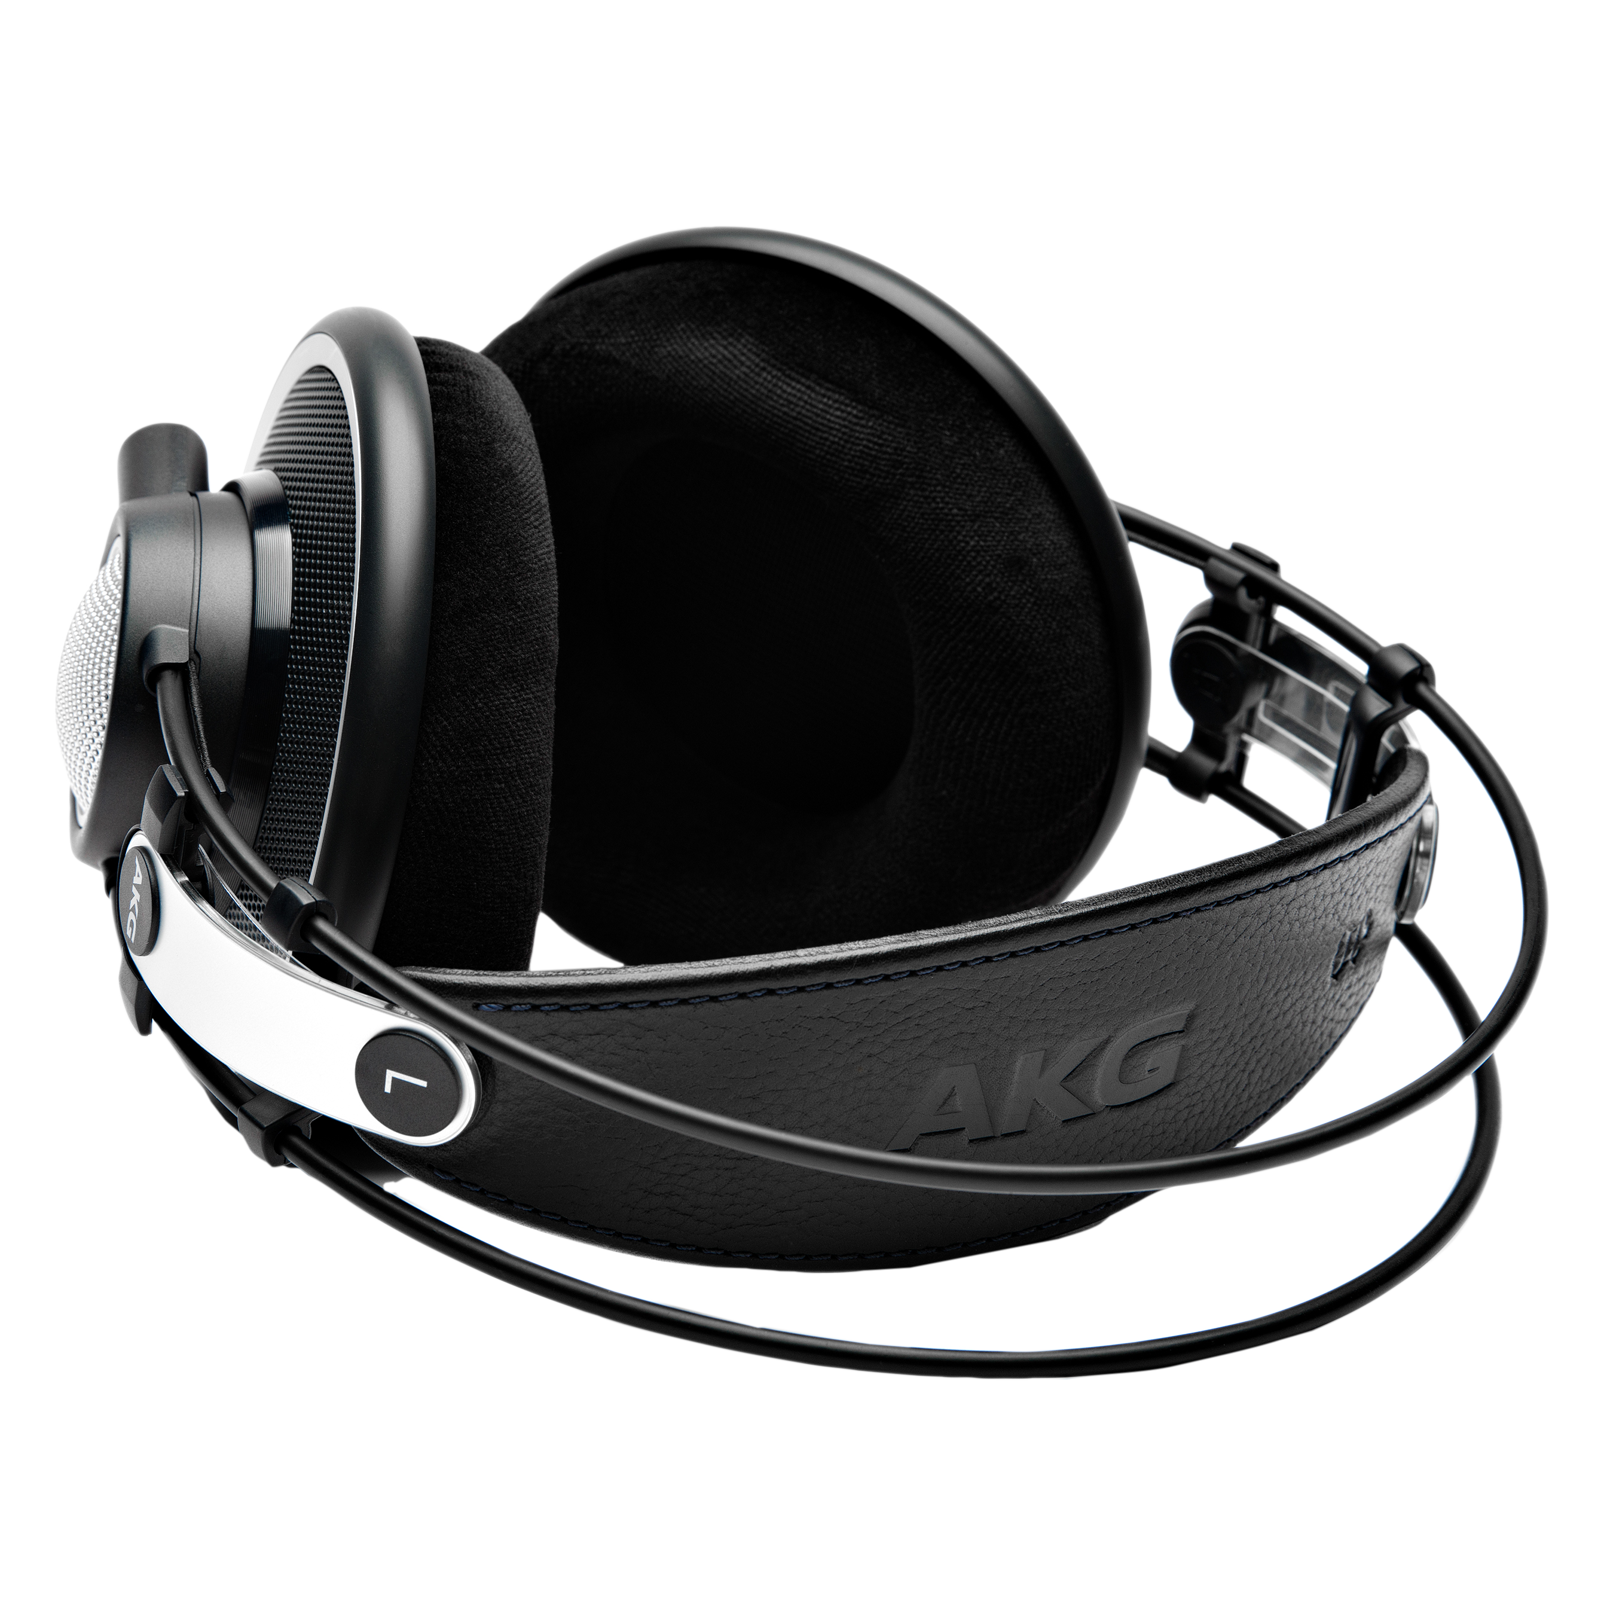 K702 - Black - Reference studio headphones - Detailshot 1